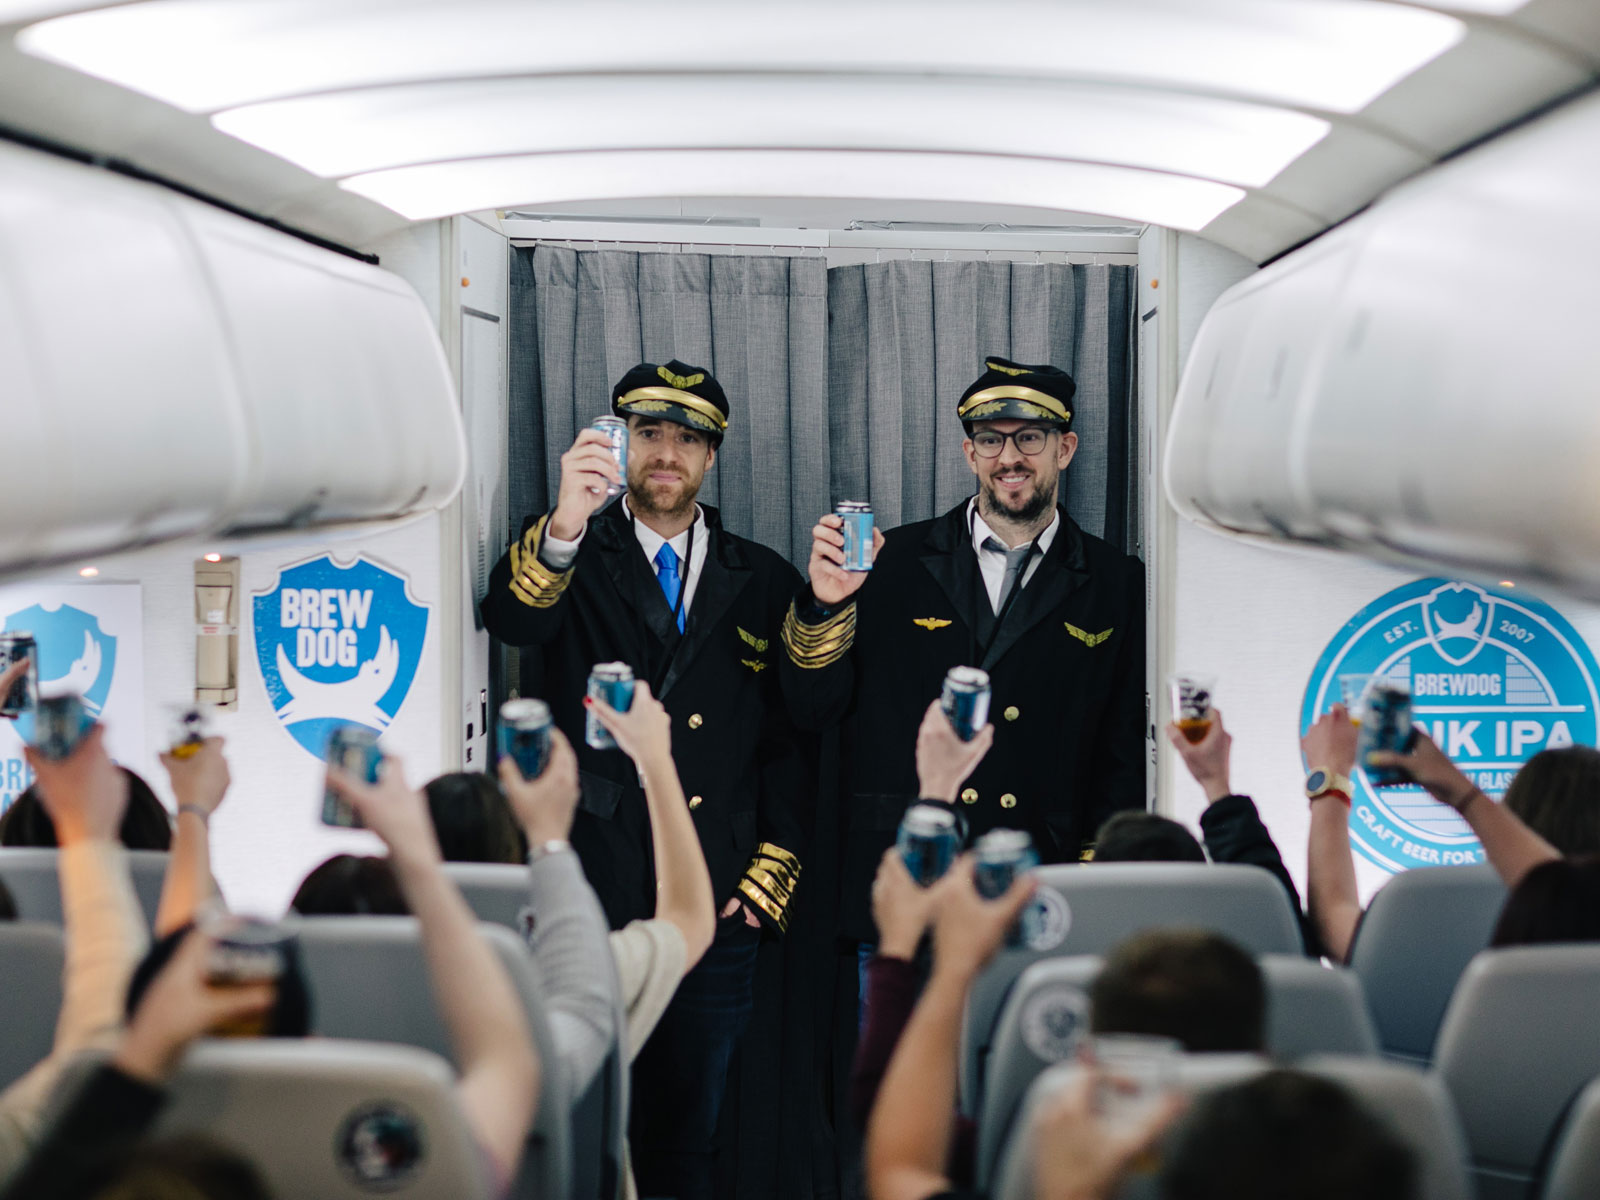 BrewDog Airlines Announces Two More Flights, Including One from the U.S. to Scotland